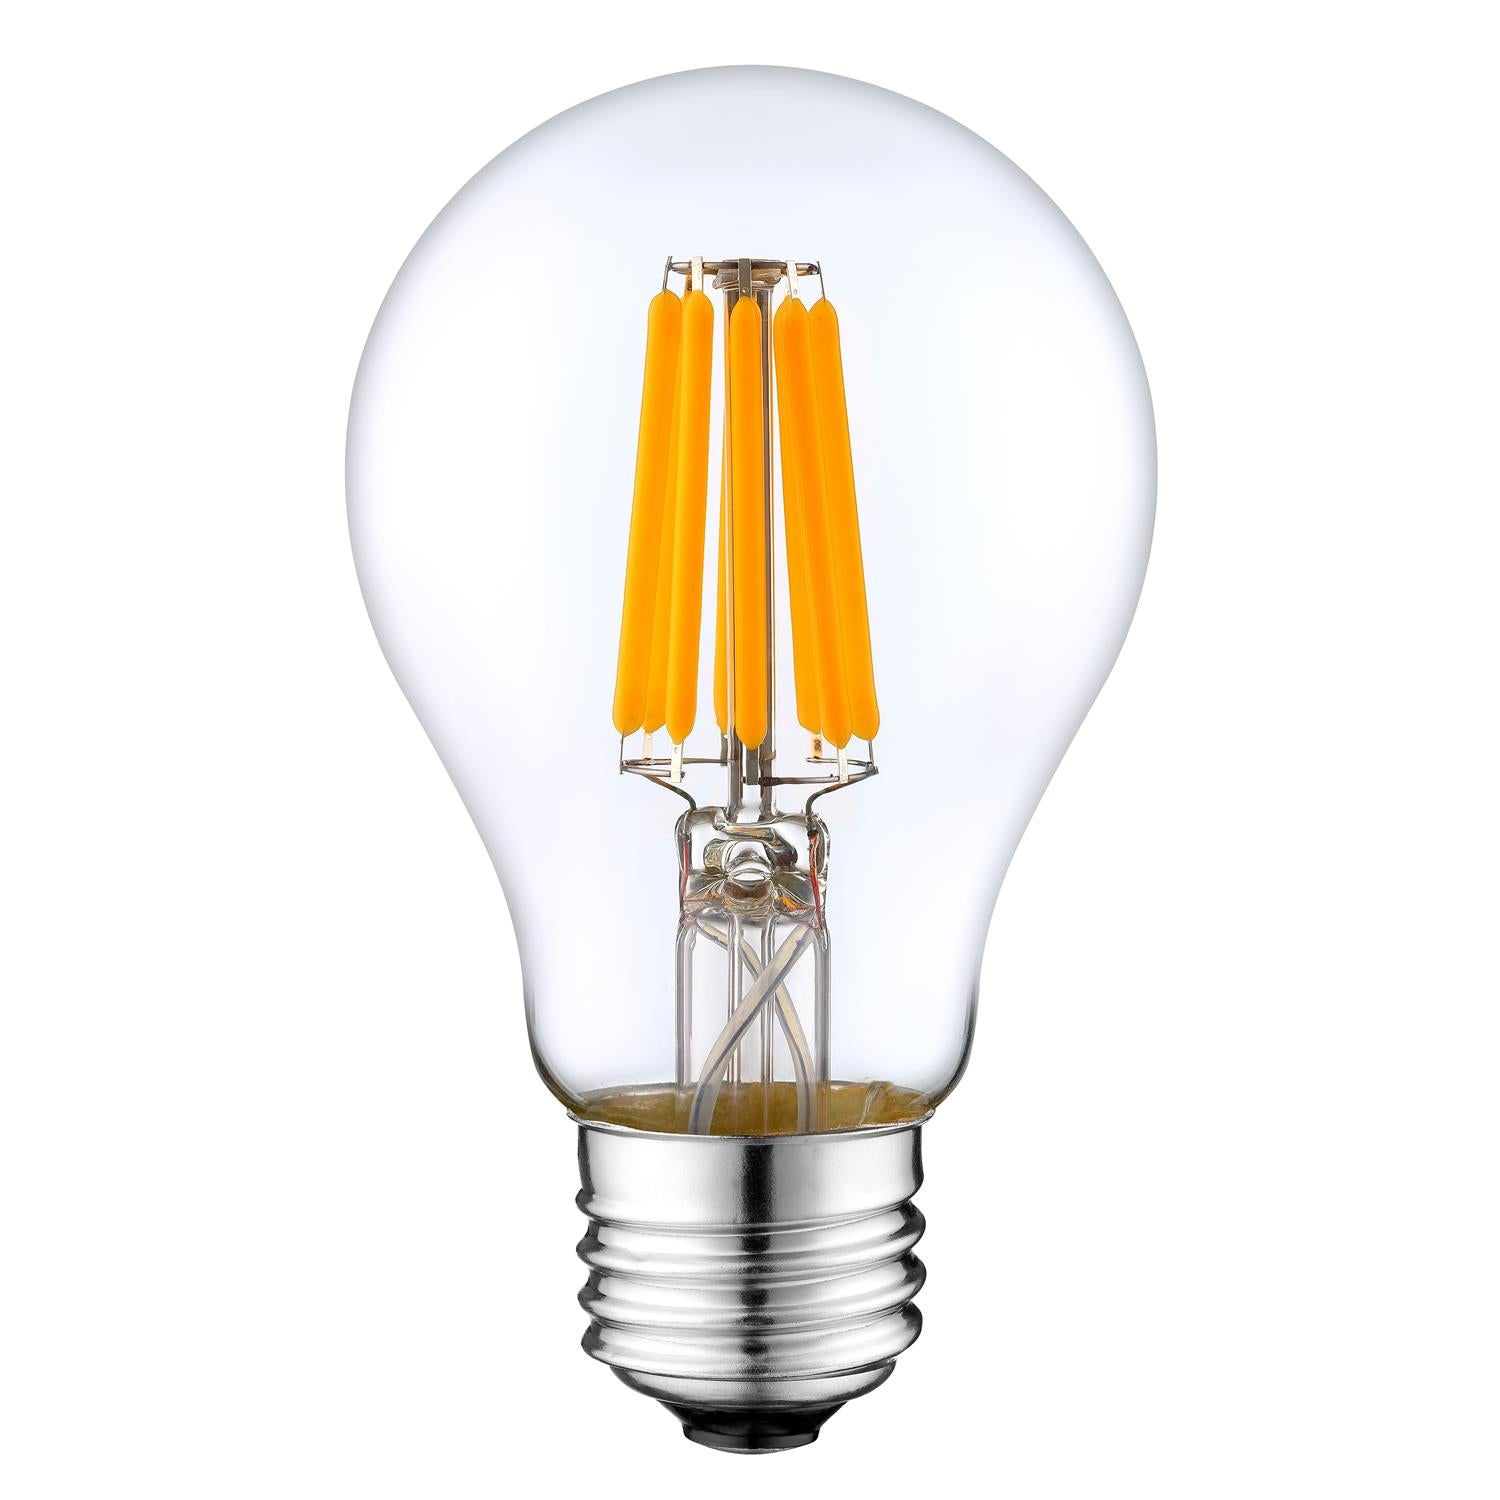 LED Filament Light Bulb A19, 10W (Warm White), (E26) UL-Listed (Pack of 2)